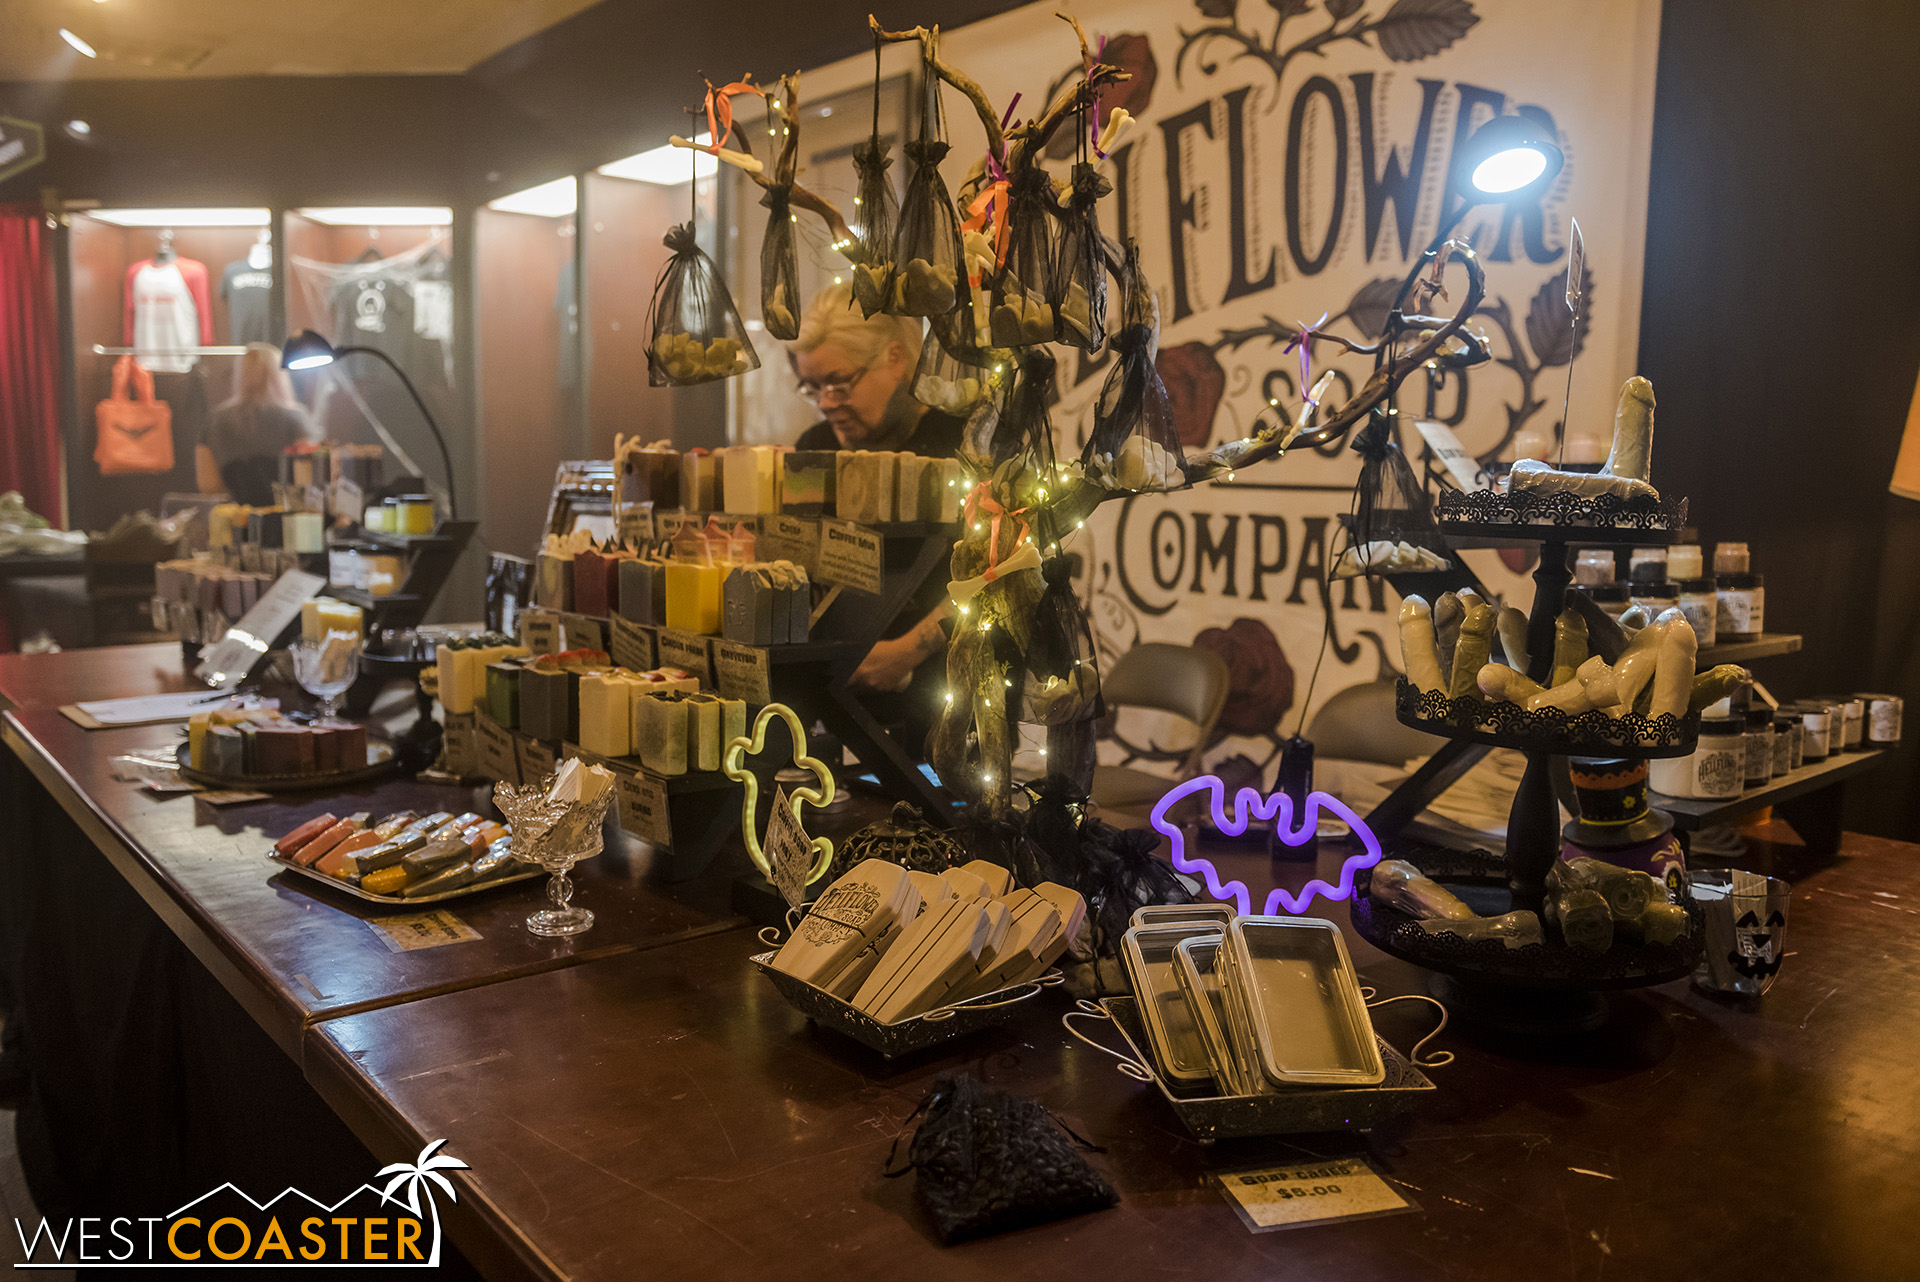 There are a variety of vendors and booths at Sinister Pointe.  It's like a miniature version of the Midsummer Scream expo hall.